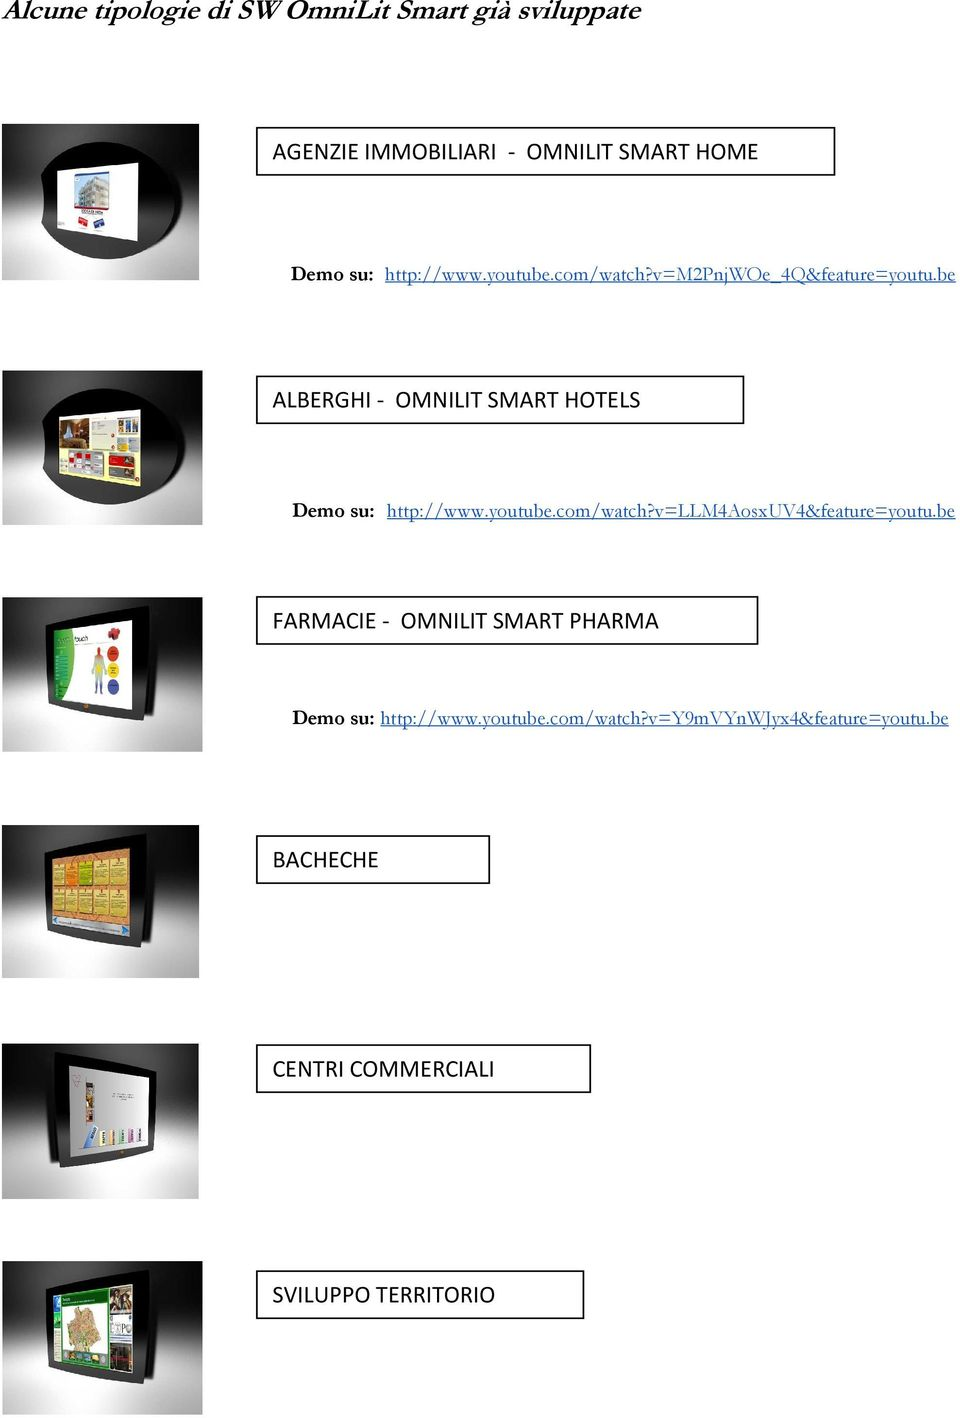 be ALBERGHI - OMNILIT SMART HOTELS Demo su: http://www.youtube.com/watch?v=llm4aosxuv4&feature=youtu.